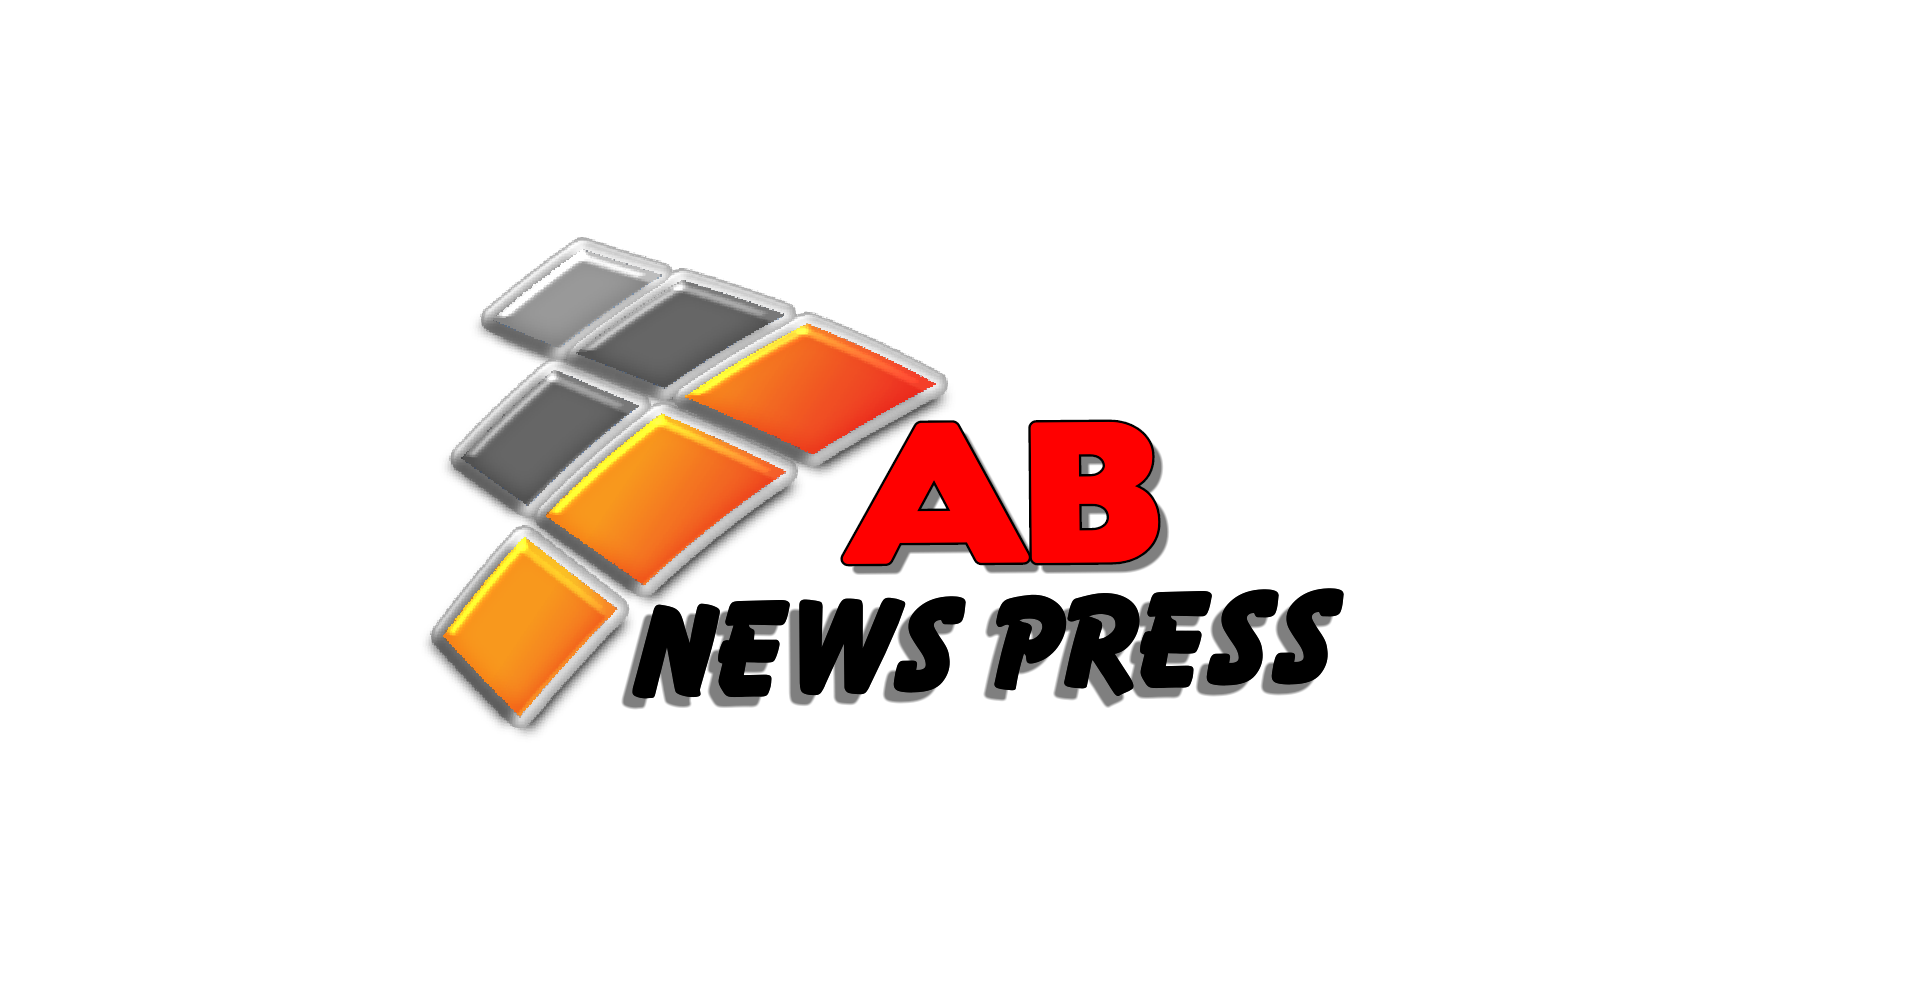 AB News Press X Bow Clash Of Clans